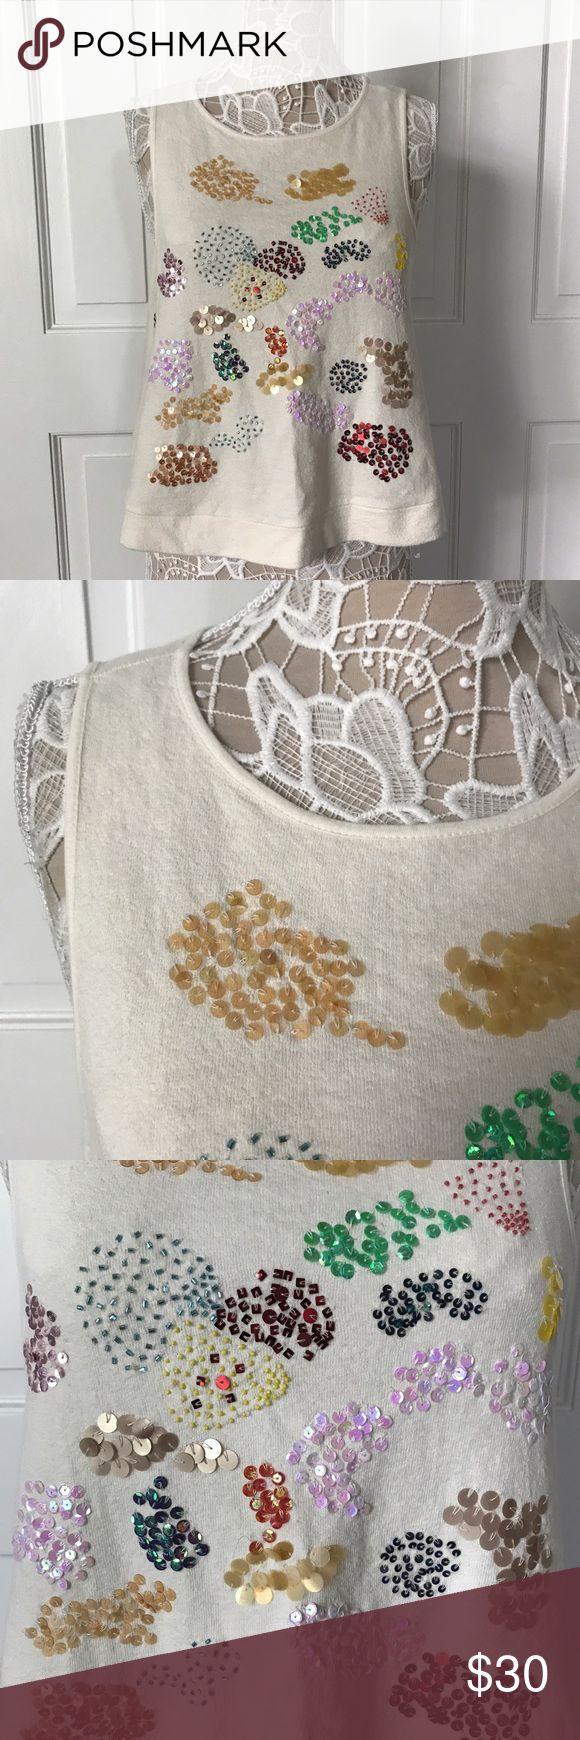 """Anthropologie Postmark Sequin Sweater Tank Small rand new. Anthropologie sale tag missing but tag with extra sequins in a little bag is still attached (see photos)  Armpit to armpit measures 21"""" Shoulder seam to hem is 21""""  From smoke free home. Anthropologie Tops Tank Tops"""